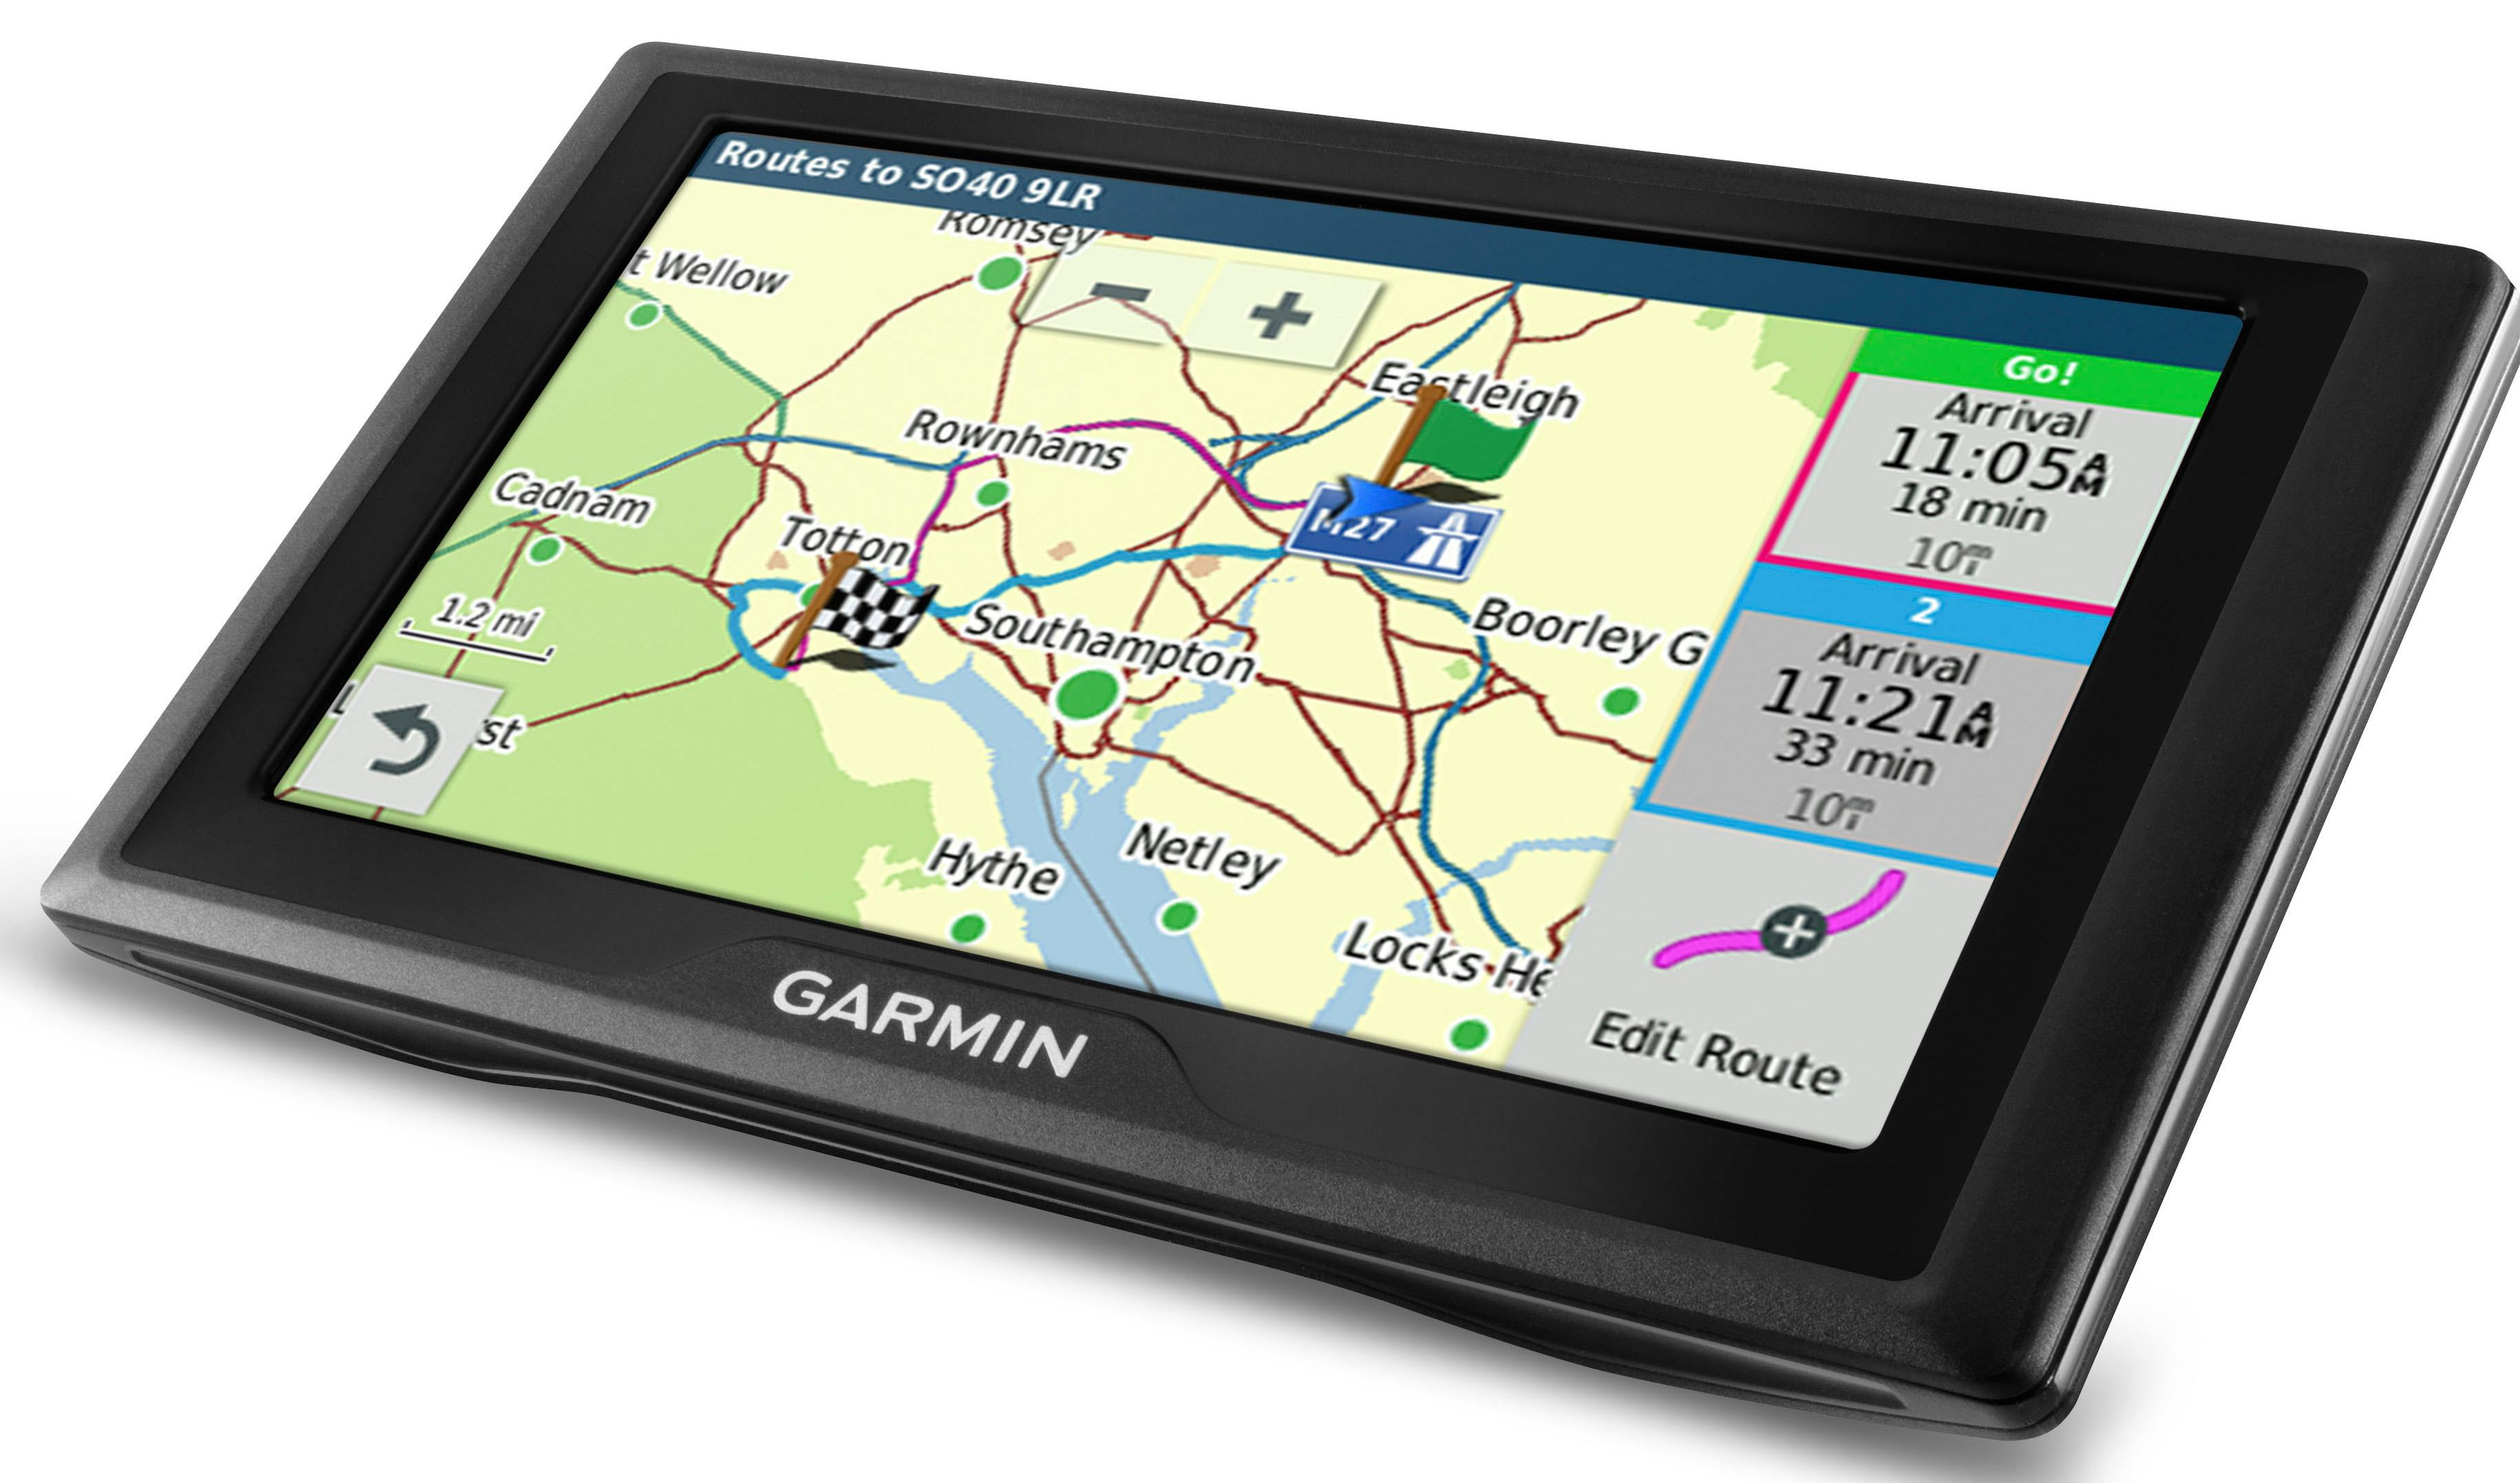 Garmin nuvi 40 update map : Global wholesalers on garmin watch, garmin 255w lifetime map updates, garmin gps map update, tomtom gps map update, tom tom map update, nuvi 255w map update, navigon map update, tomtom latest map update, apple iphone map update, garmin lifetime map upgrade, garmin lifetime updater, garmin auto updater, garmin 1450 map update, garmin 350 map update, nuvi 265w map update, garmin zumo map update, my garmin map update, garmin map update lifetime maps, garmin etrex map update, garmin streetpilot map update,